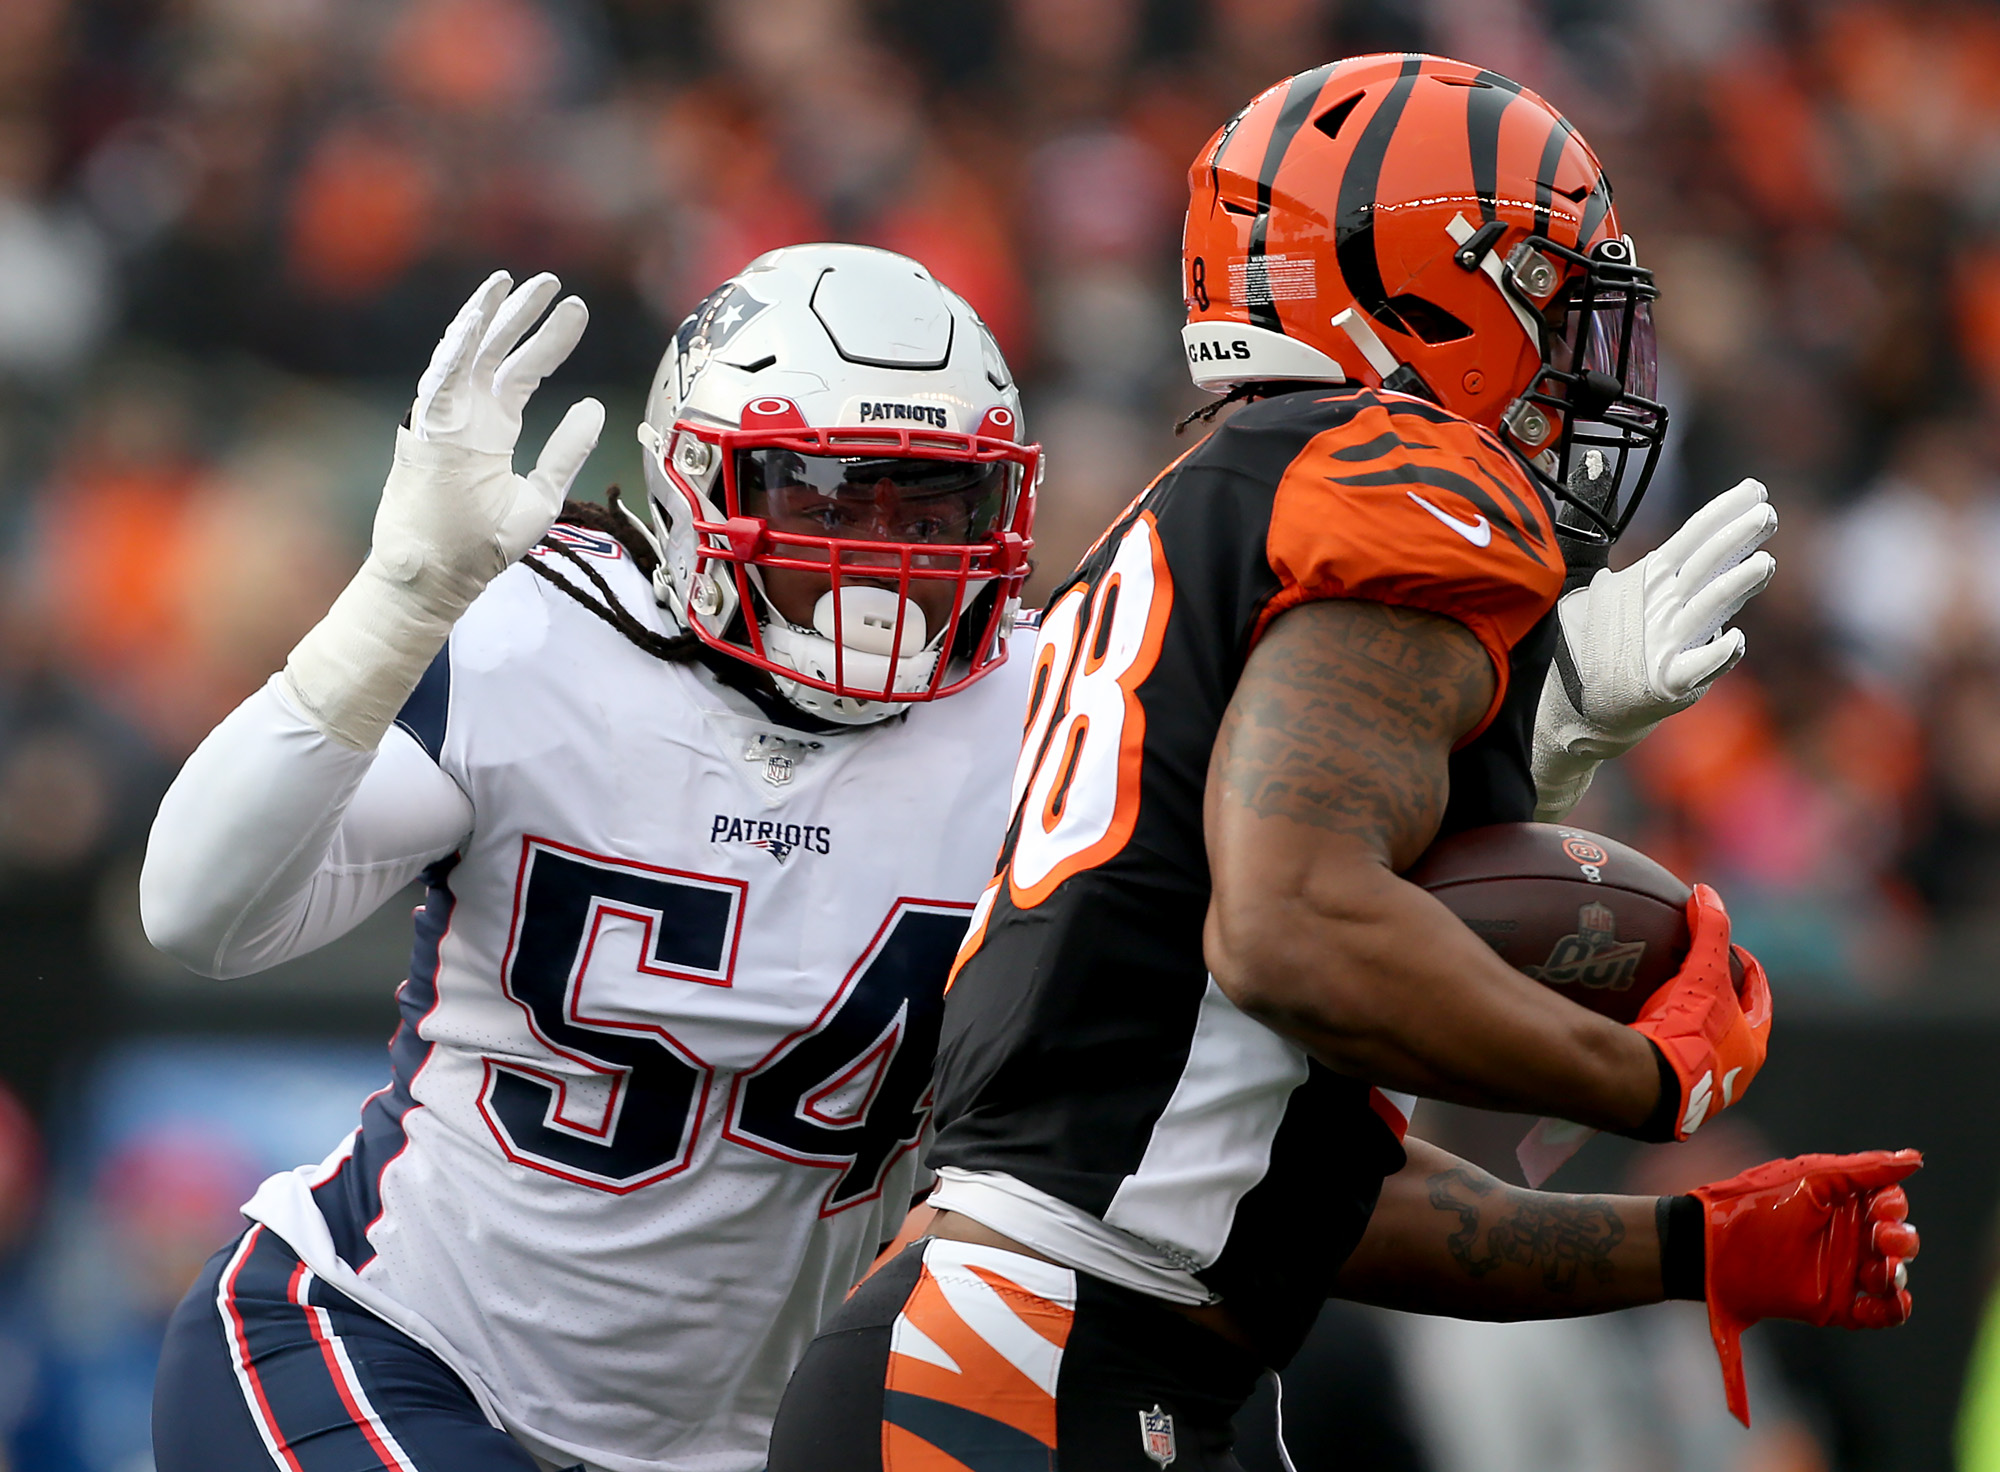 Patriots will have key opt-outs Donta Hightower, Patrick Chung and Marcus Cannon returning